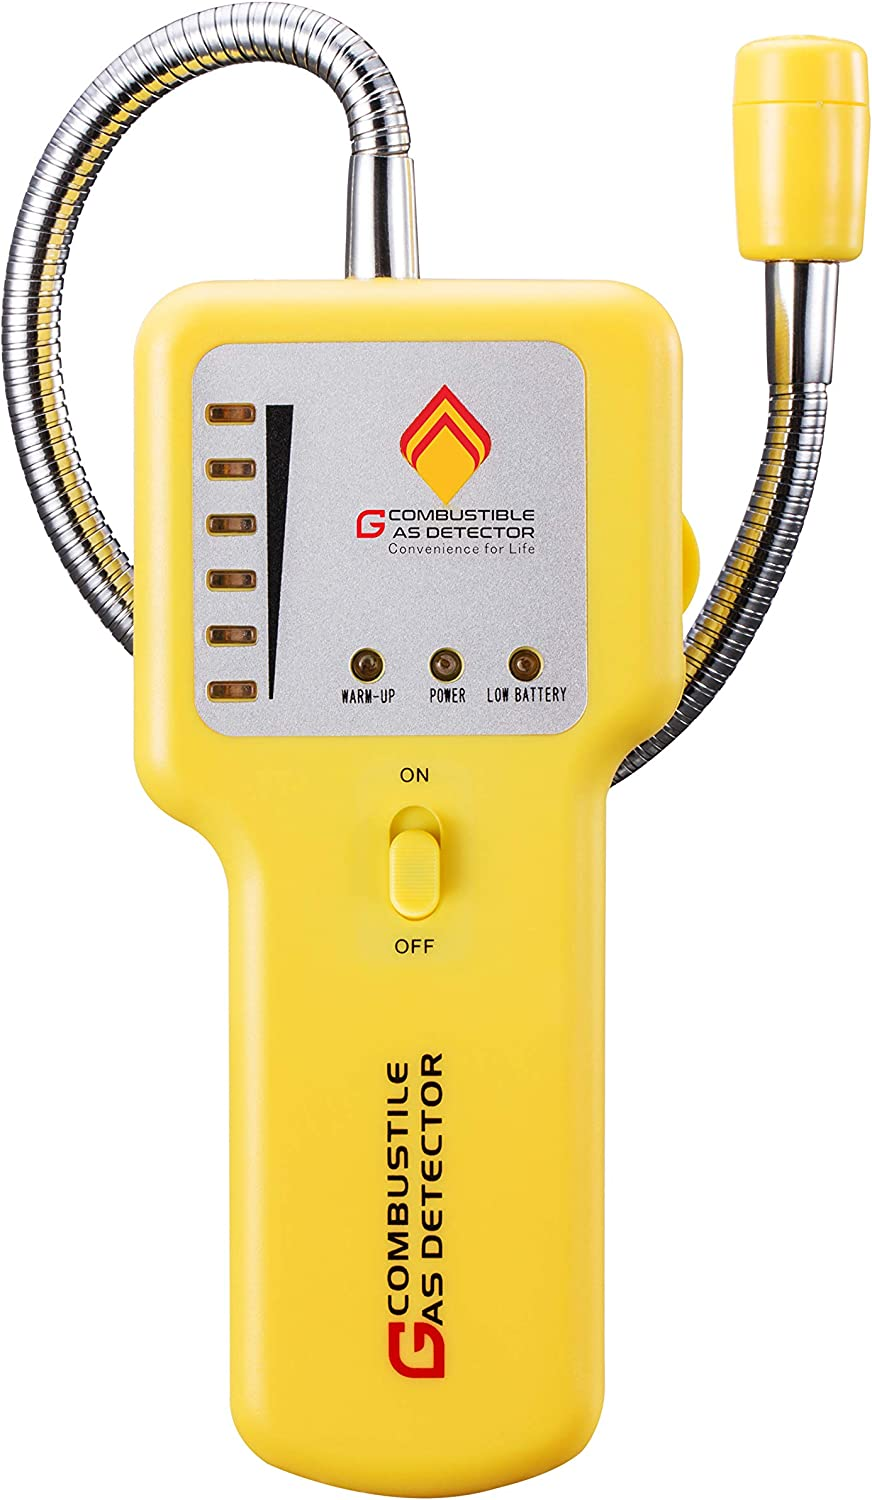 Y201 Portable Combustible Natural Gas Leak Detector; Portable Gas Sniffer, Detect Leaks of Combustible Gases Such as Methane, Propane, Natural Gas, Fuel, LPG,LNG ;Sound & Visual Alarm